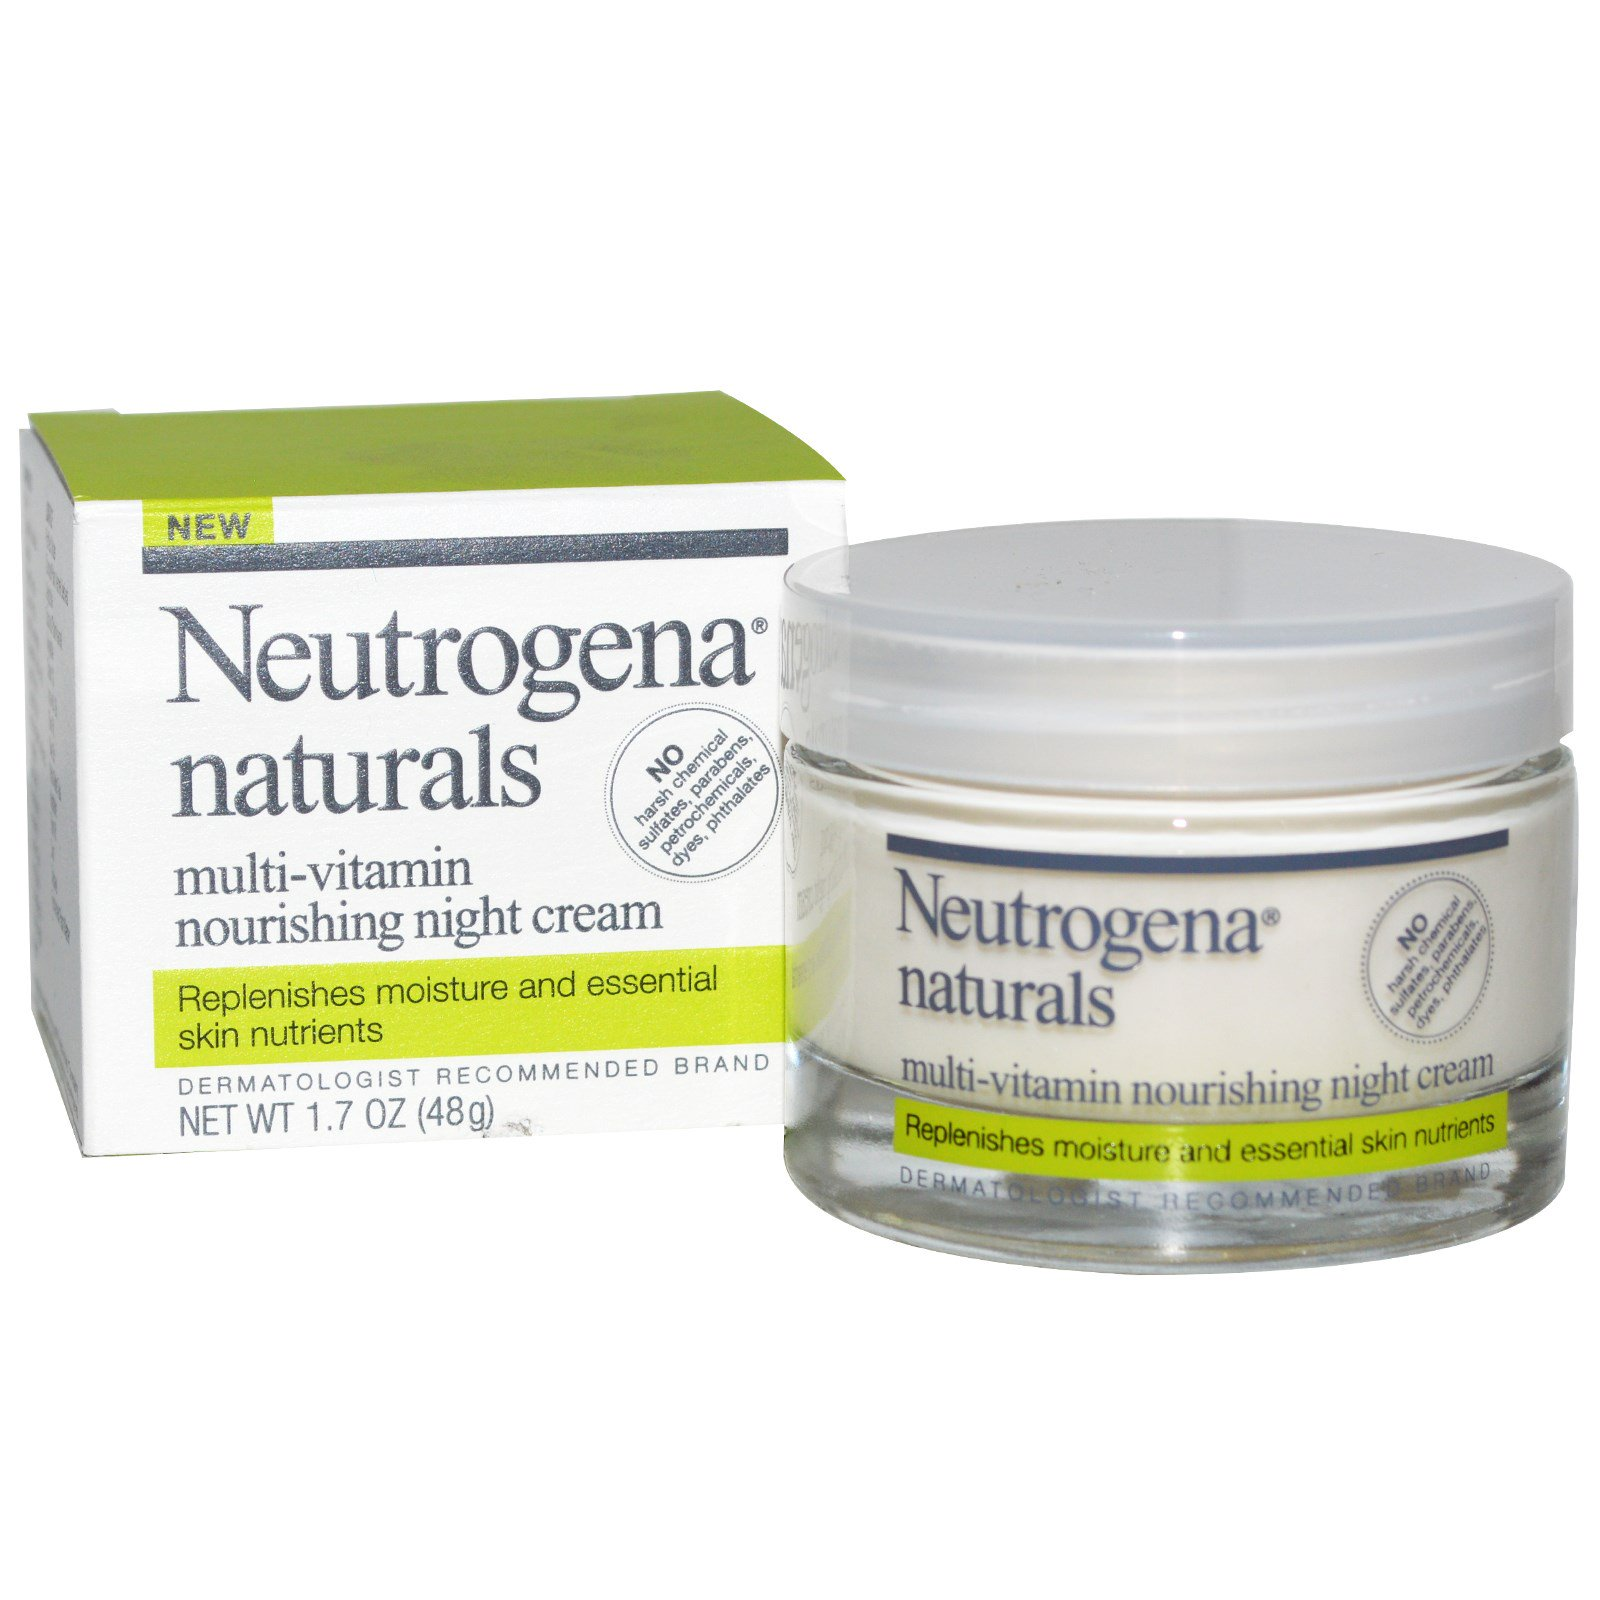 5 Pack - Neutrogena Naturals Nourishing Night Cream 1.7oz Each Clarins Double Serum Complete Age Control Concentrate, 1.6 Oz